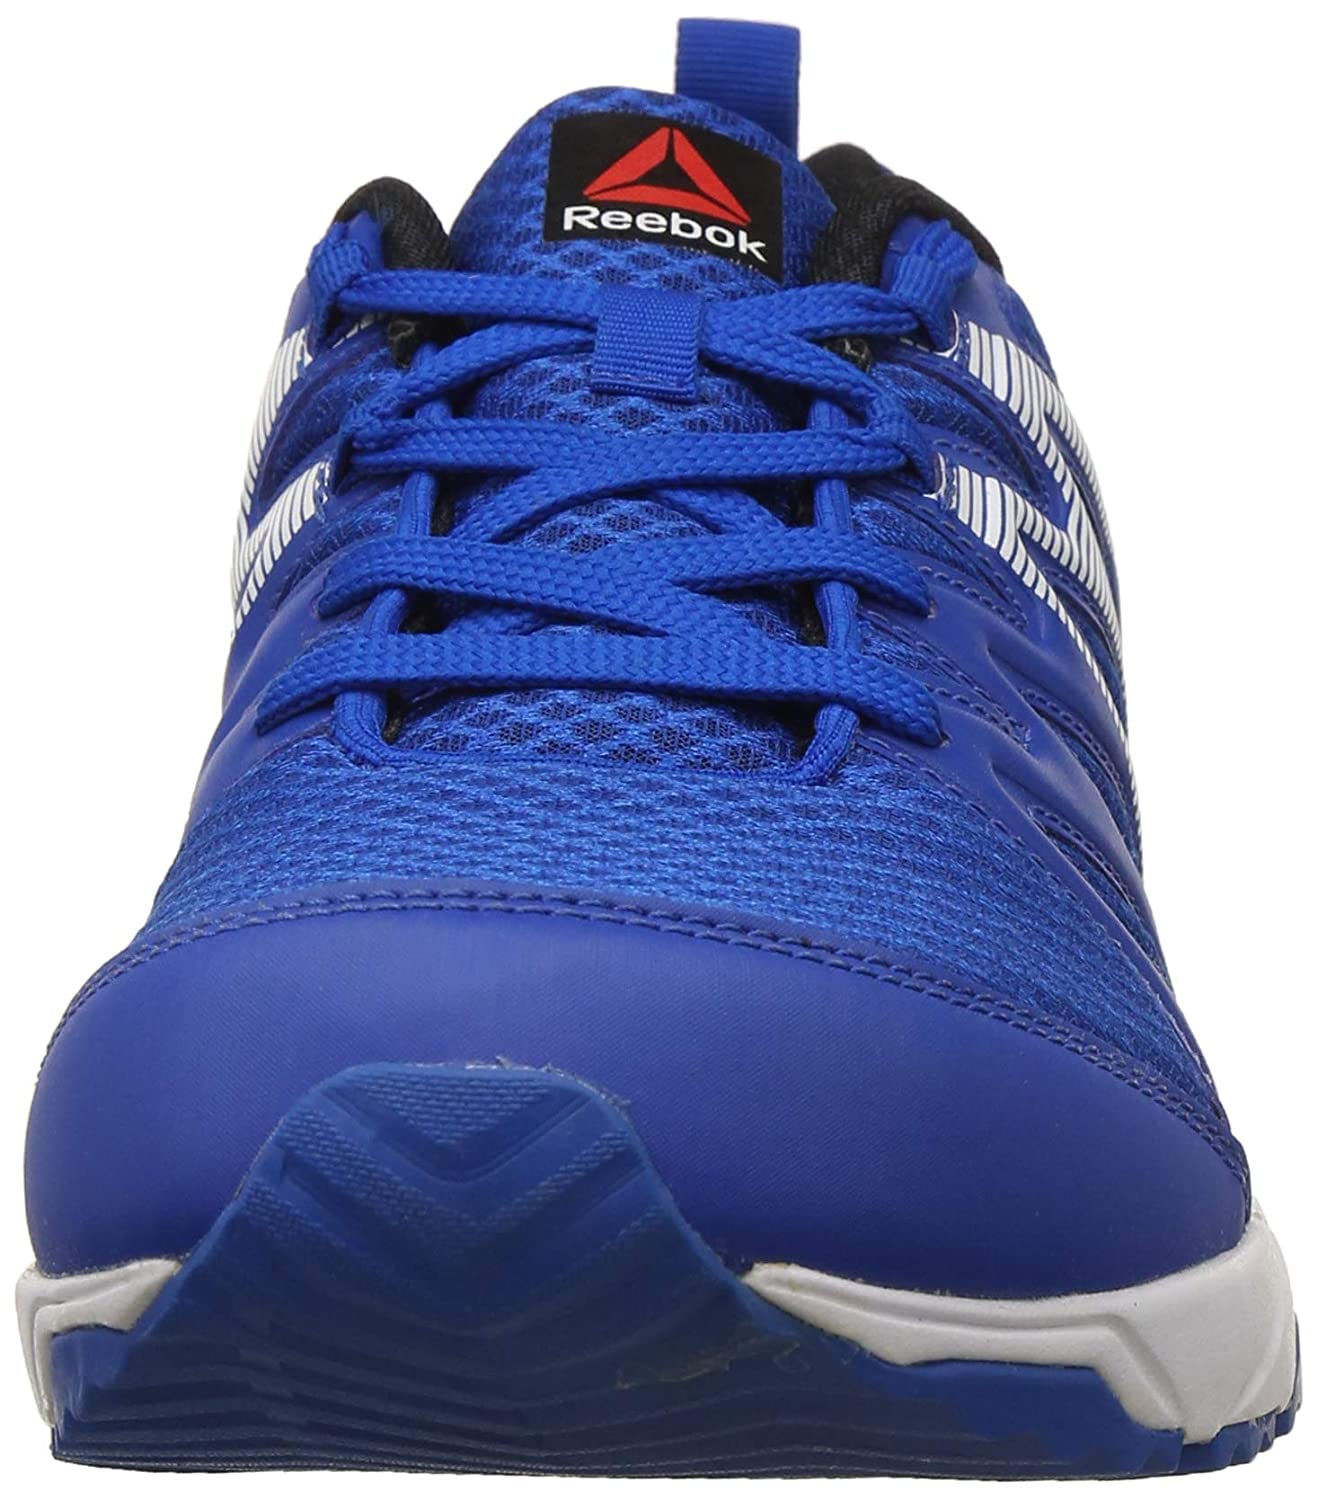 bb5b9c81739139 Reebok Men s Arcade Runner Blue Running Shoes - 11 UK India (45.5 EU)(12  US)(BD4090)  Buy Online at Low Prices in India - Amazon.in